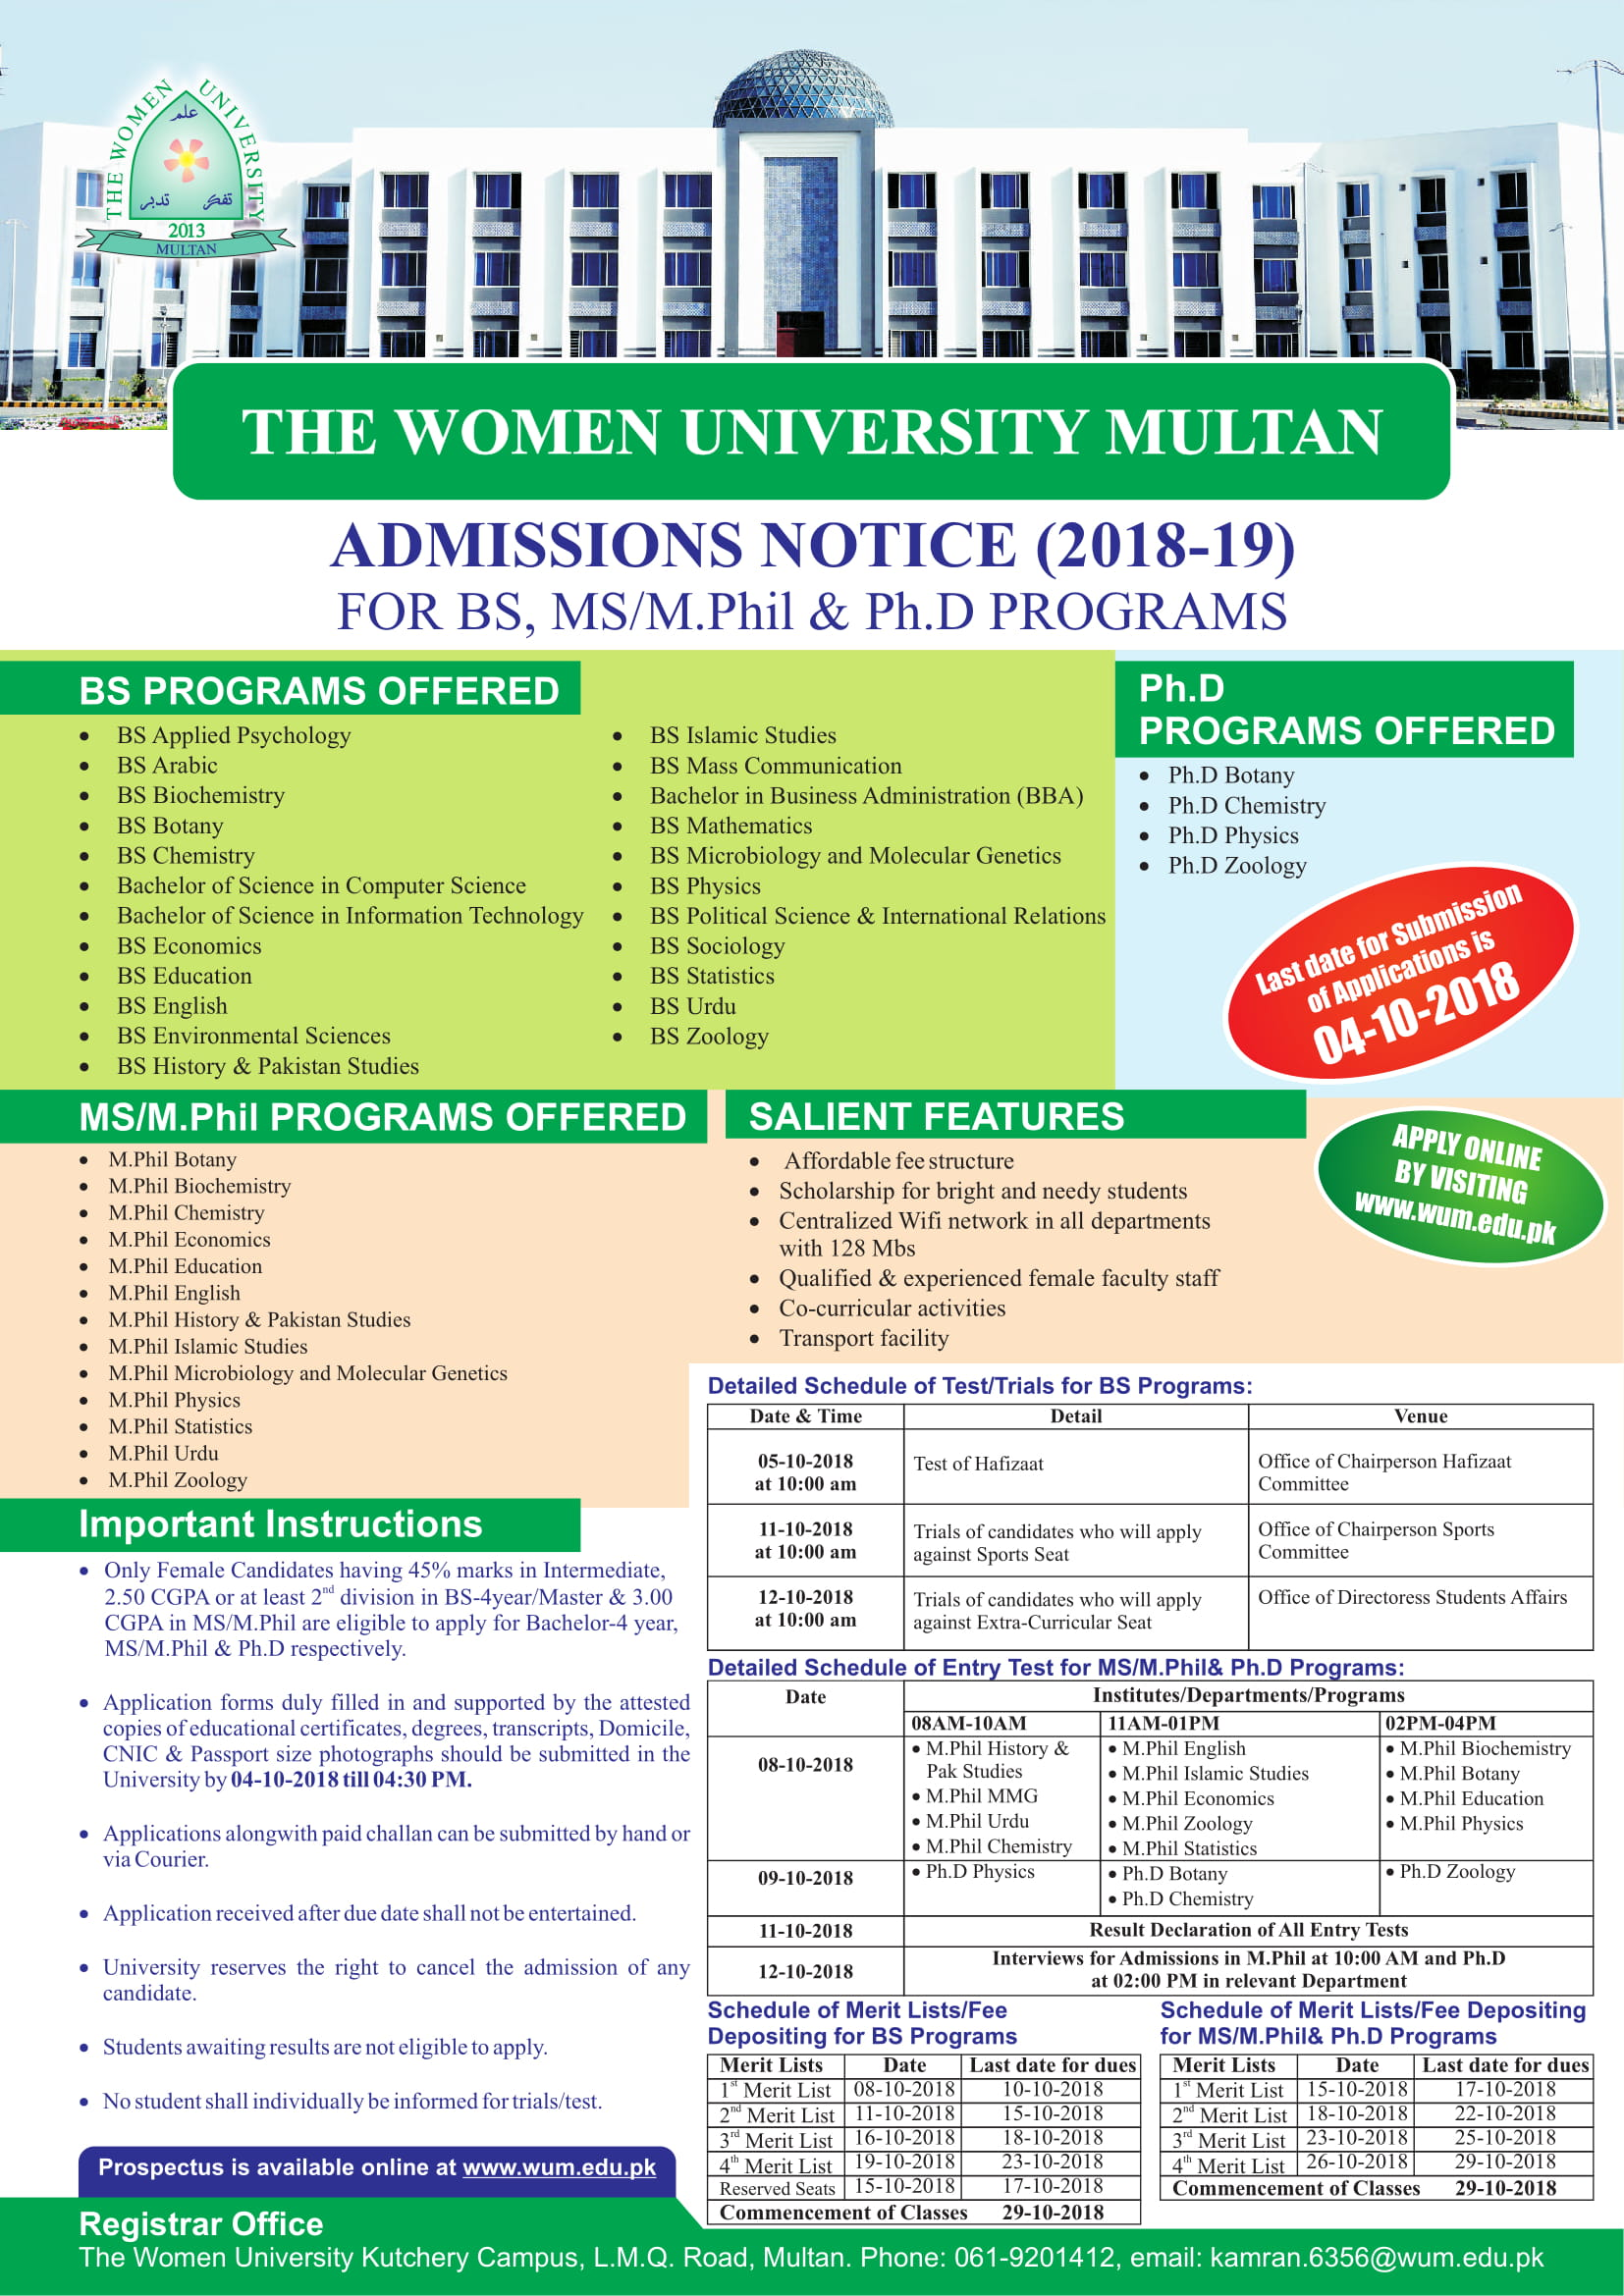 The Women University Multan BS Programs Admissions Fall 2018